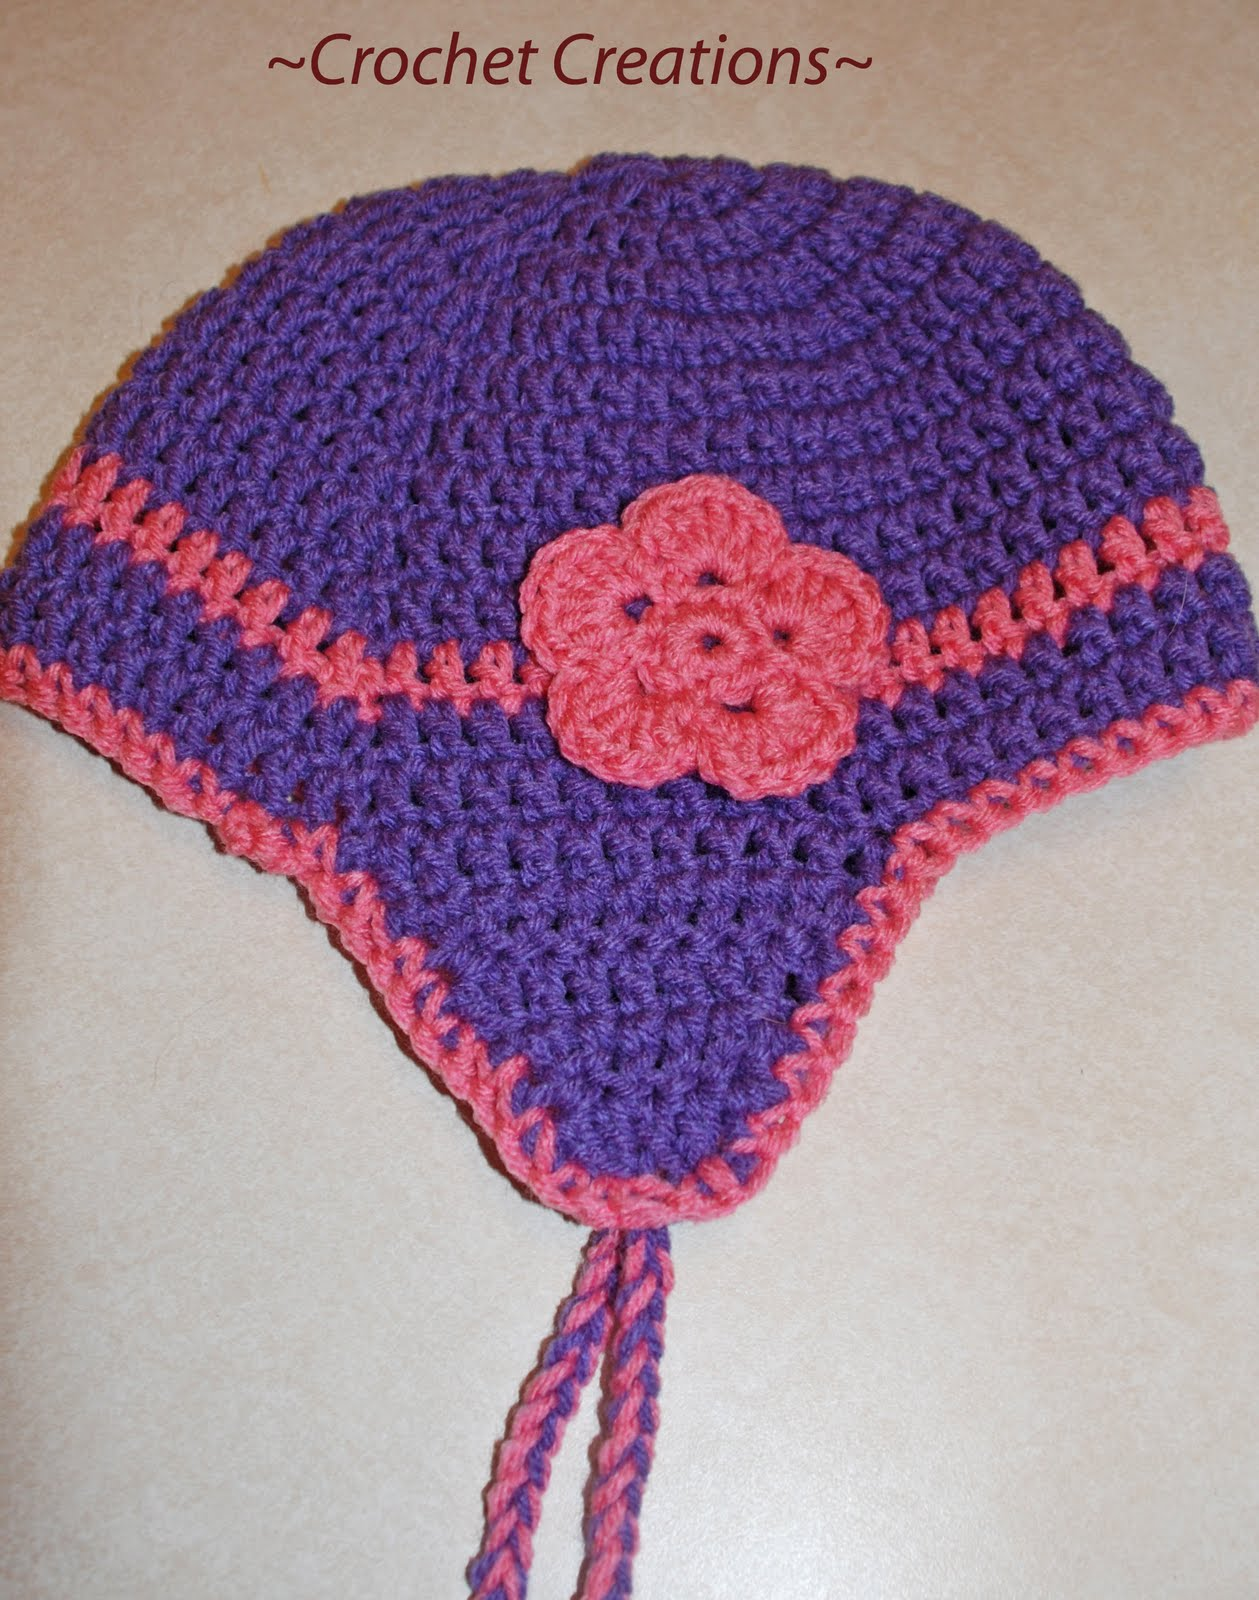 Crochet Patterns Hat With Ear Flaps : CROCHET EAR FLAP HAT PATTERNS Crochet Patterns